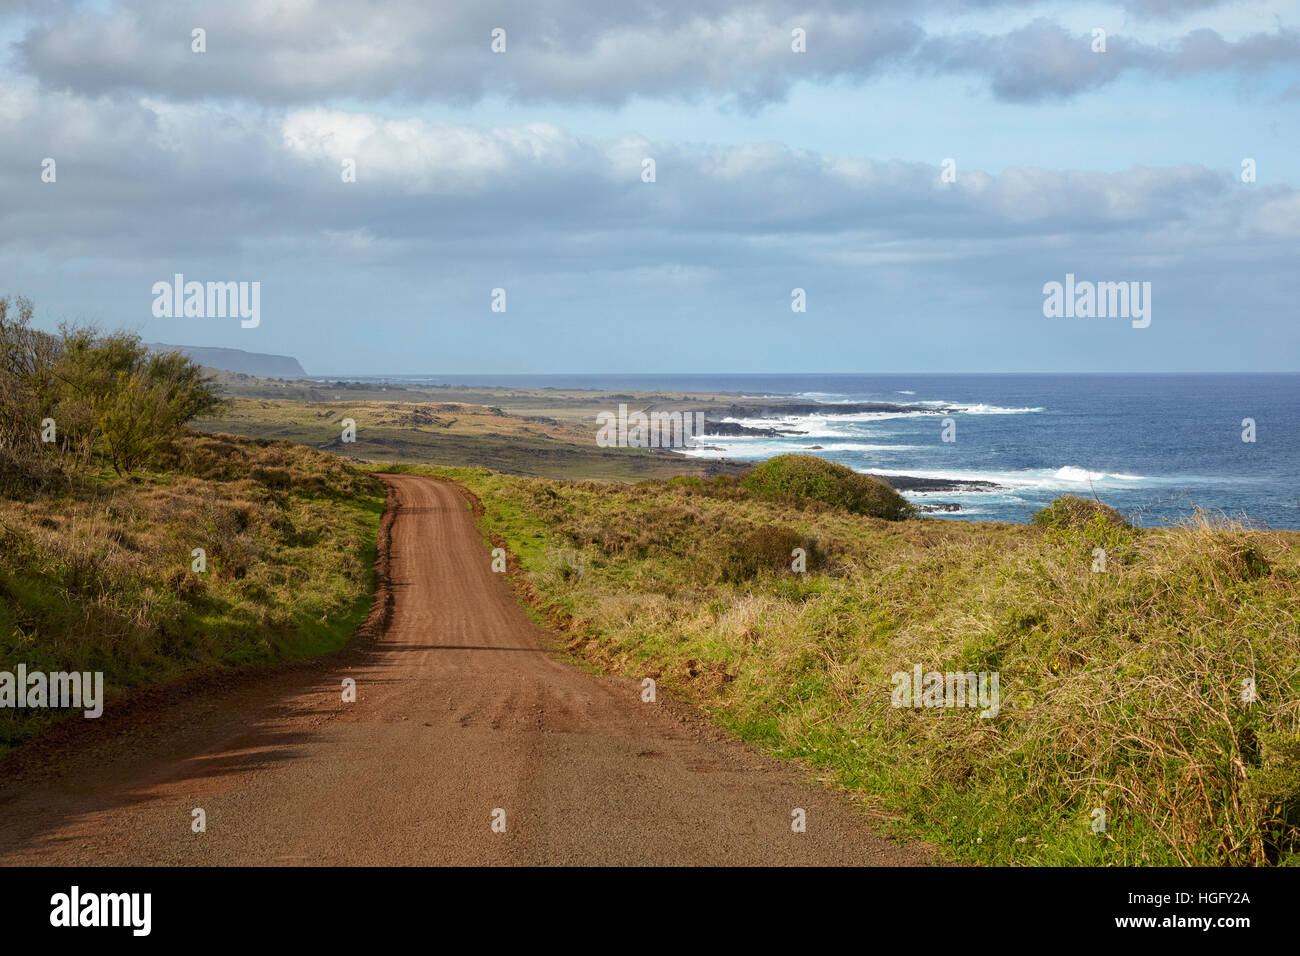 Southern shore road, Easter Island, Chile - Stock Image